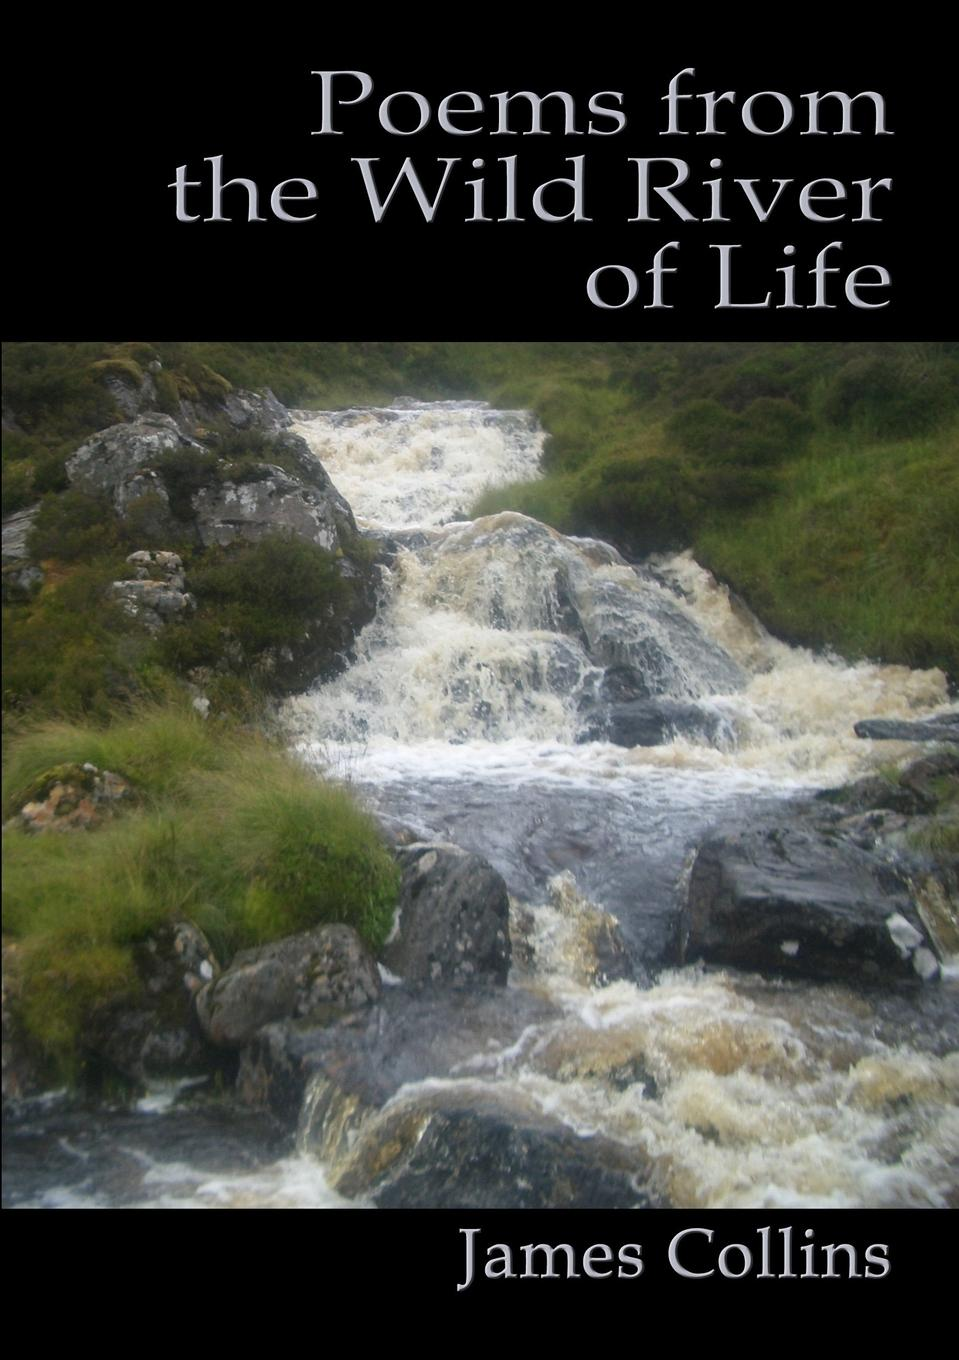 James Collins Poems from the Wild River of Life